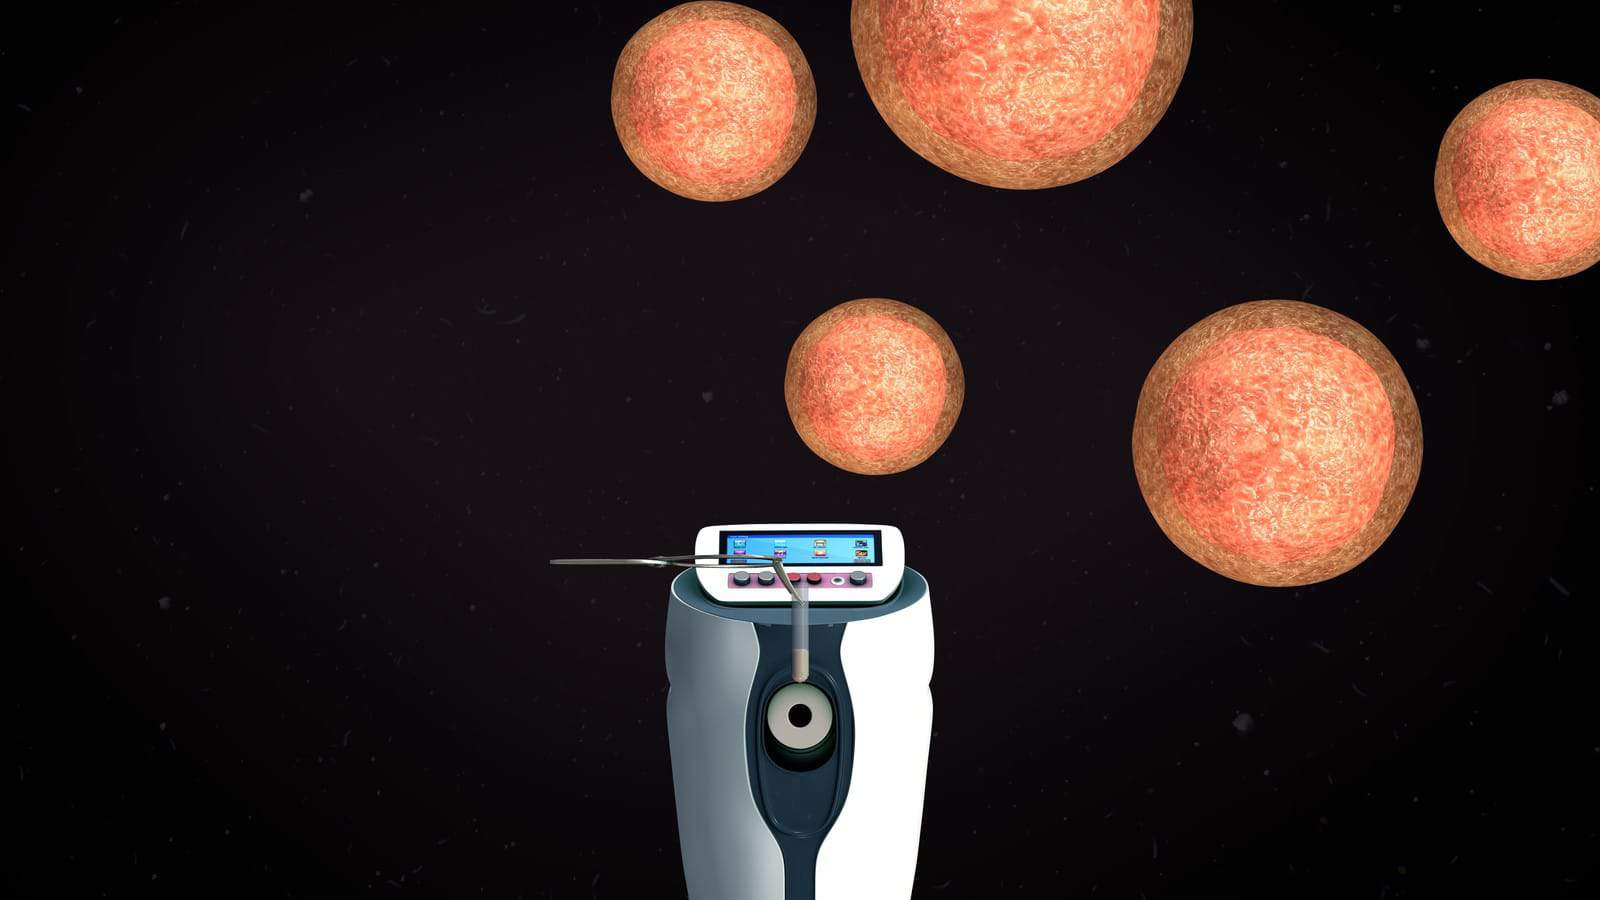 Rich Vaughn Blog: Legal Time Limits on Cryopreserved Embryos Creates New Biological Time Clock